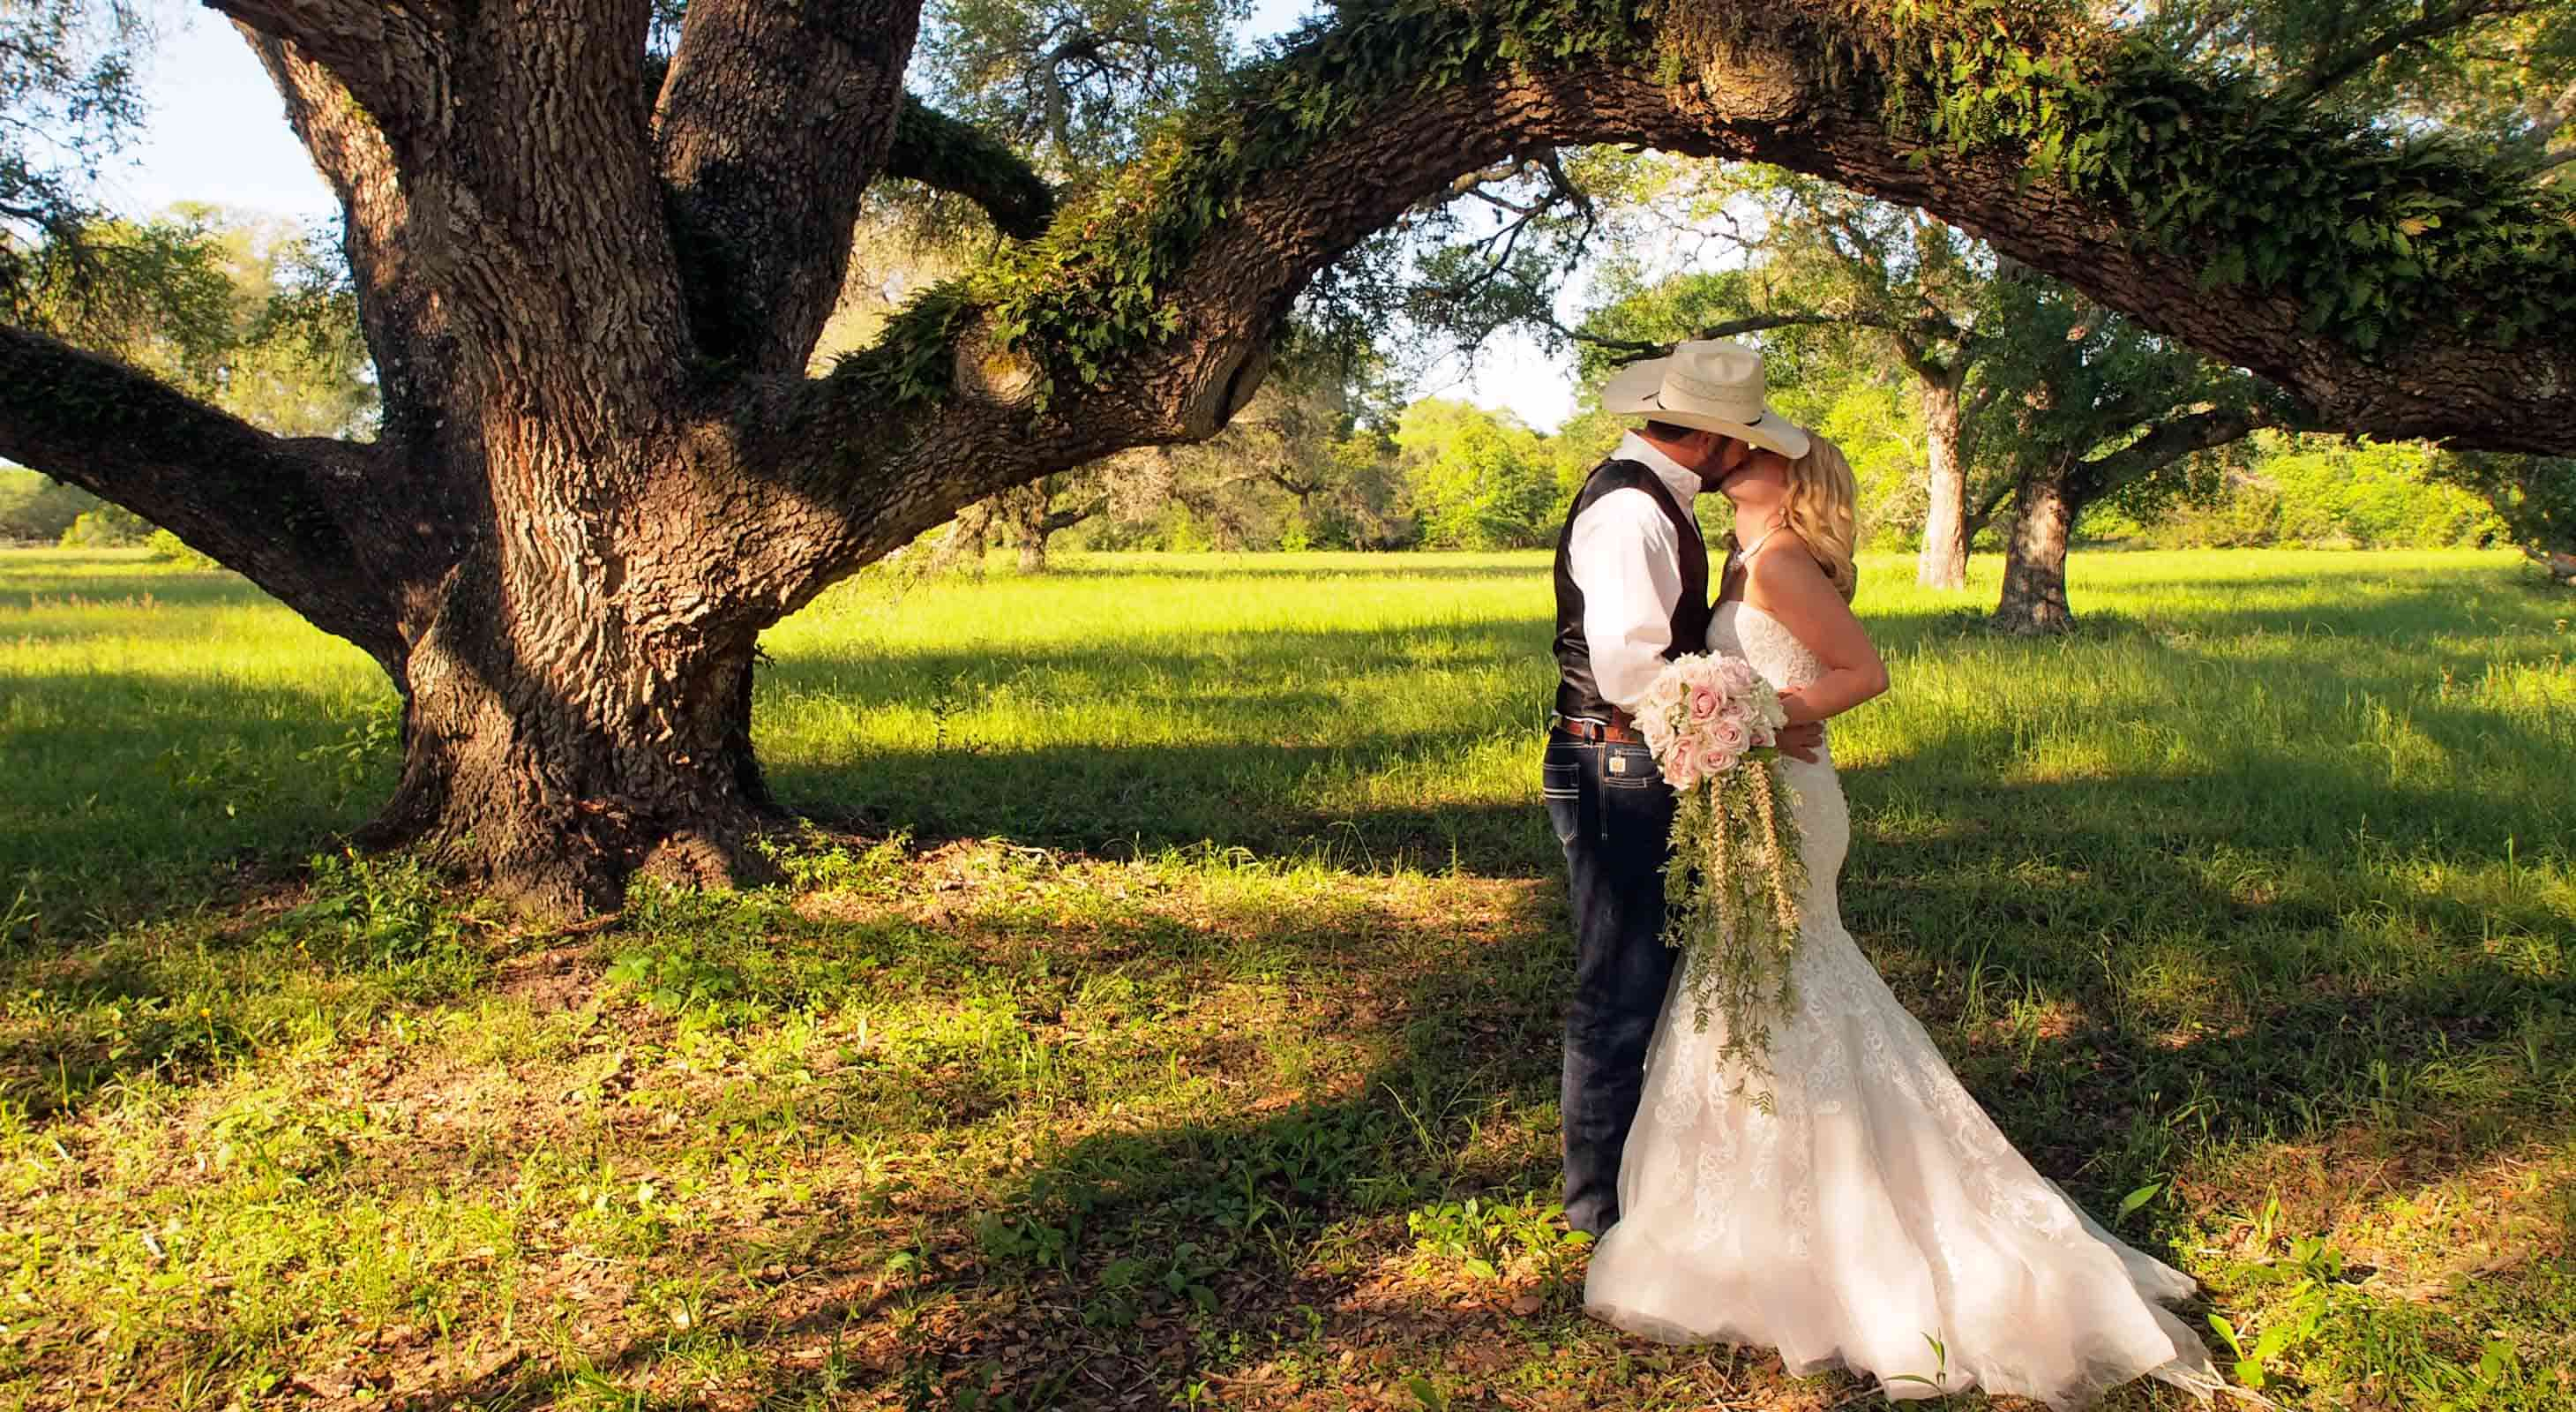 Bride and groom under large oaks at our Texas wedding venue